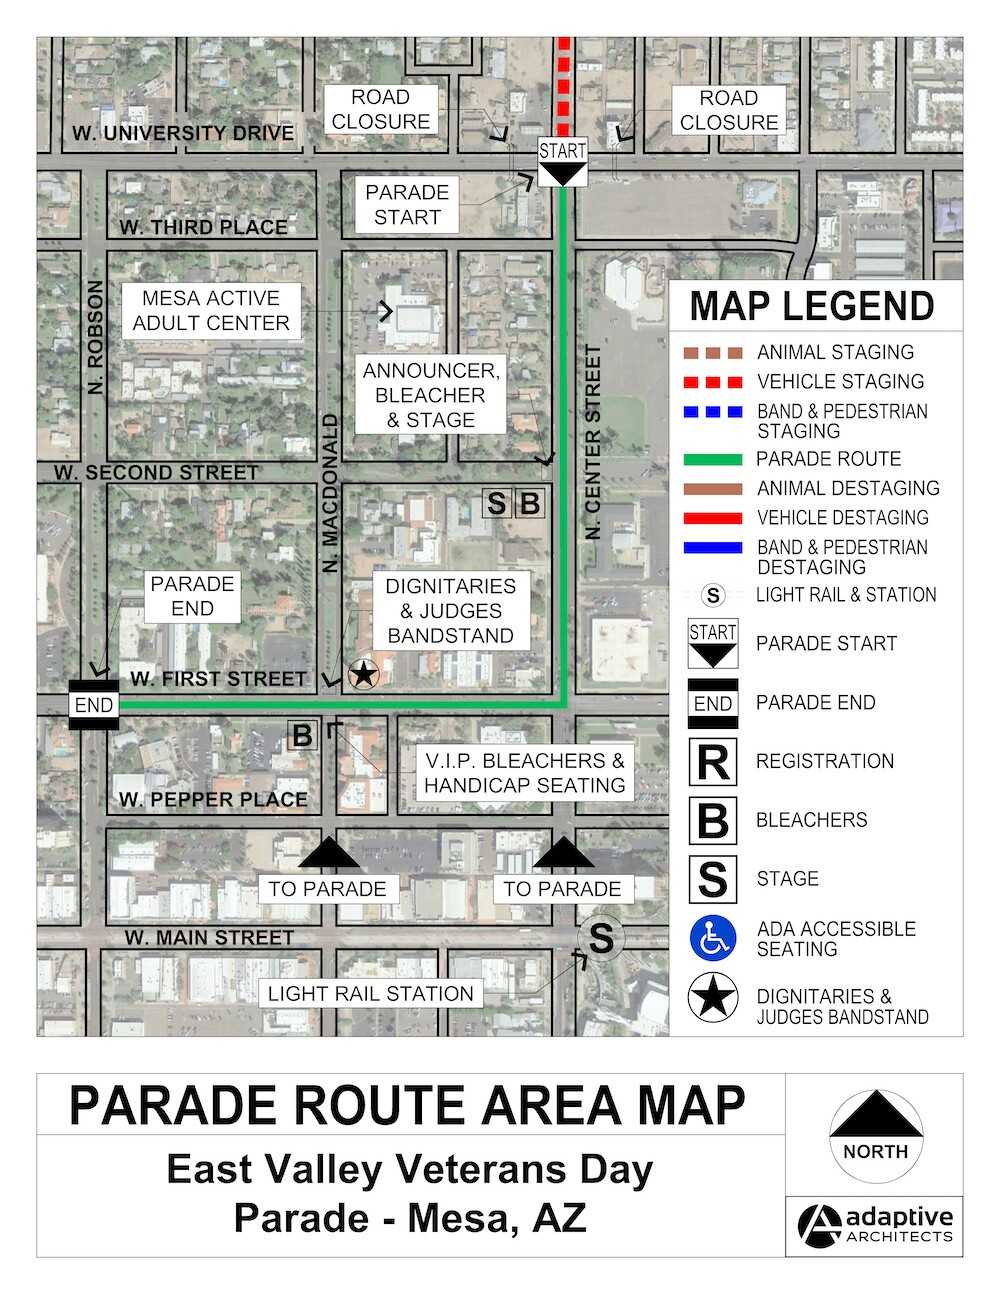 Map of the East Valley Veterans Day Parade route